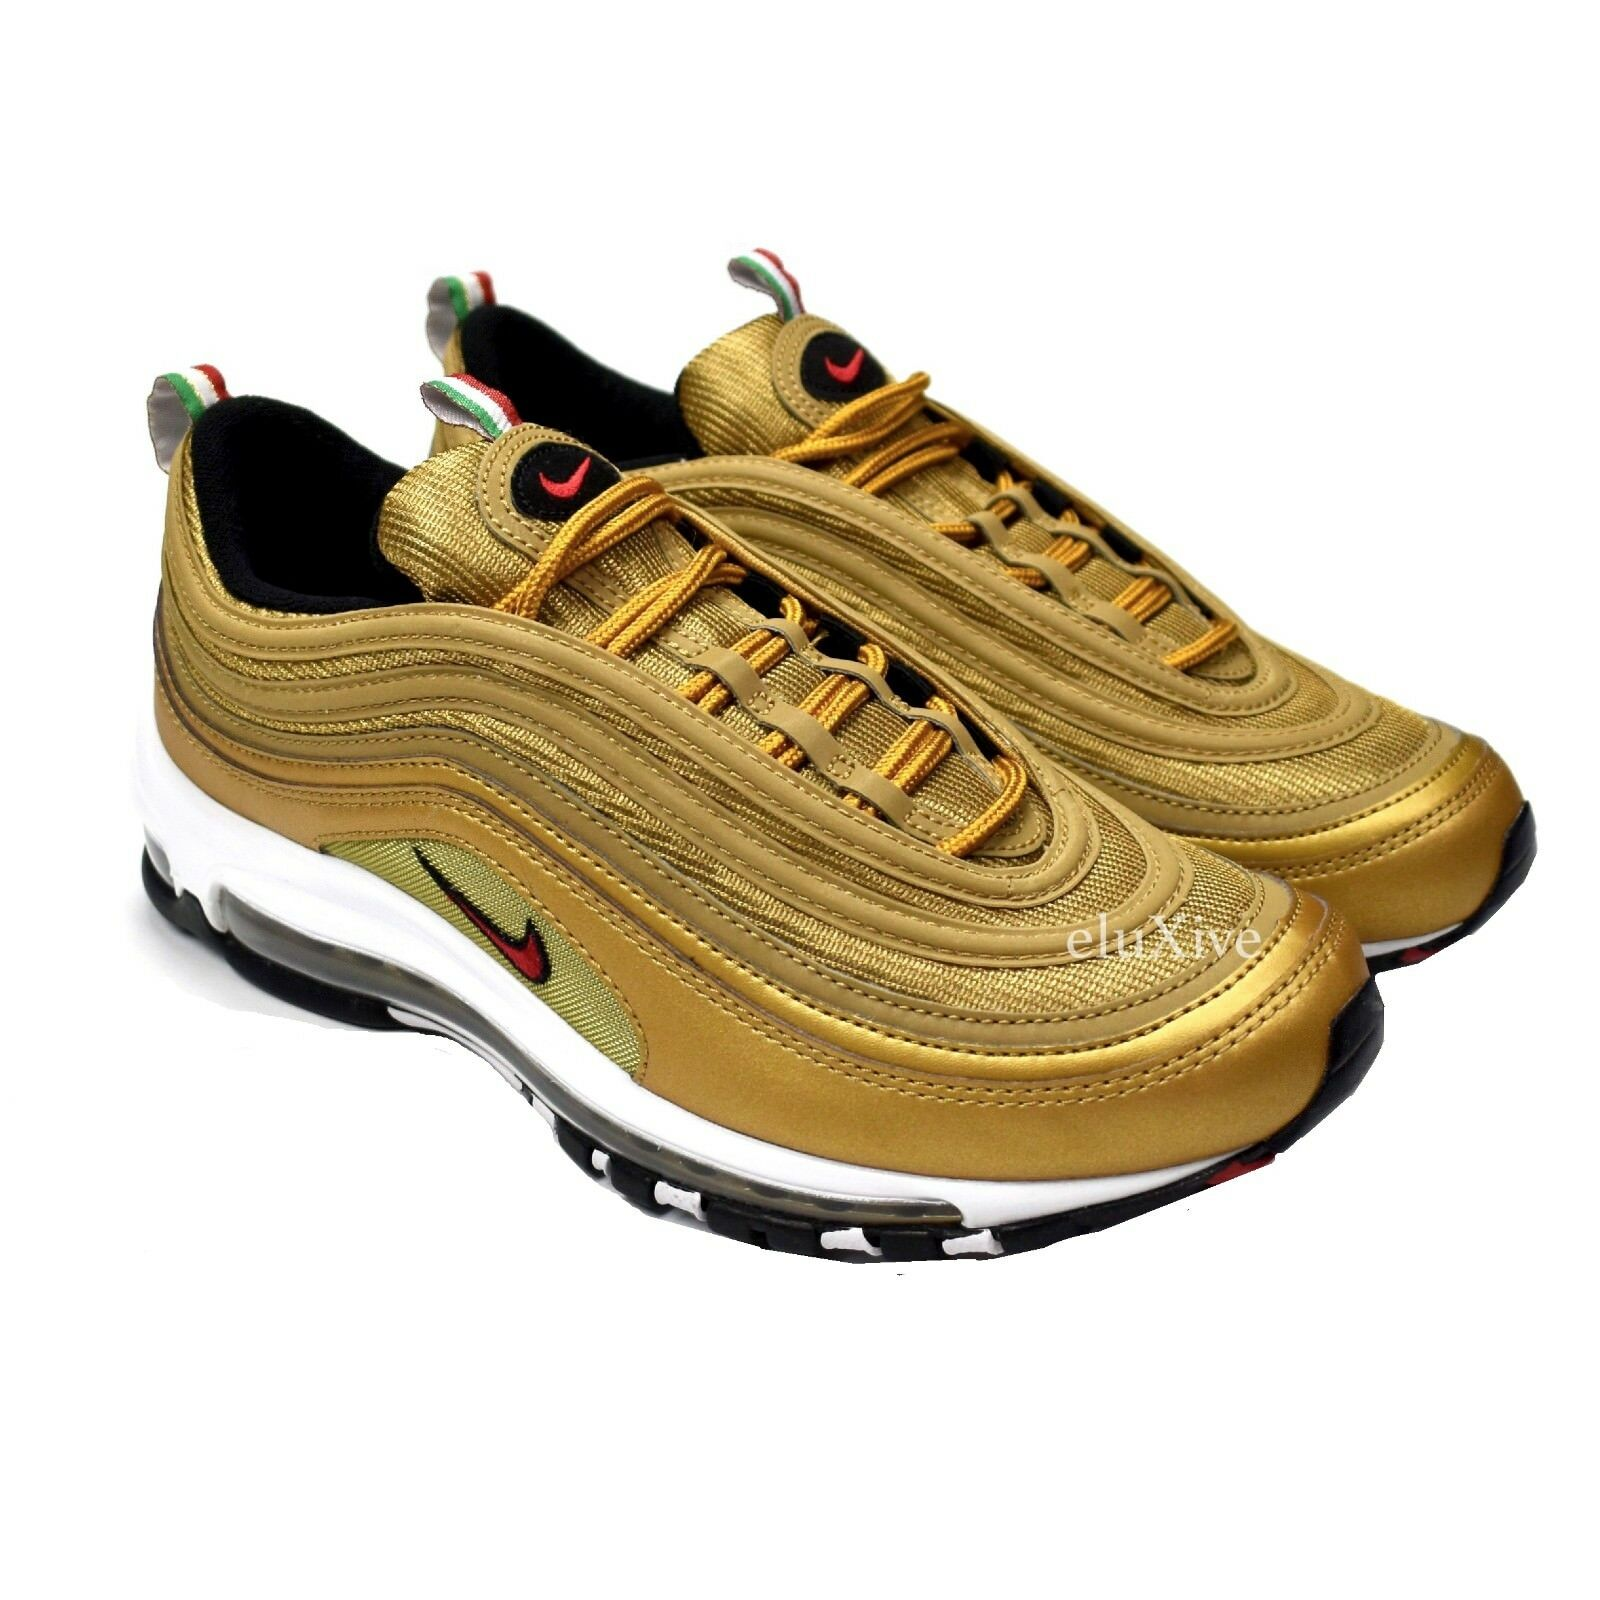 98b606b242 NWT Nike Air Max 97 IT Men's Metallic Gold Italy Flag Sneakers DS 2018  AUTHENTIC